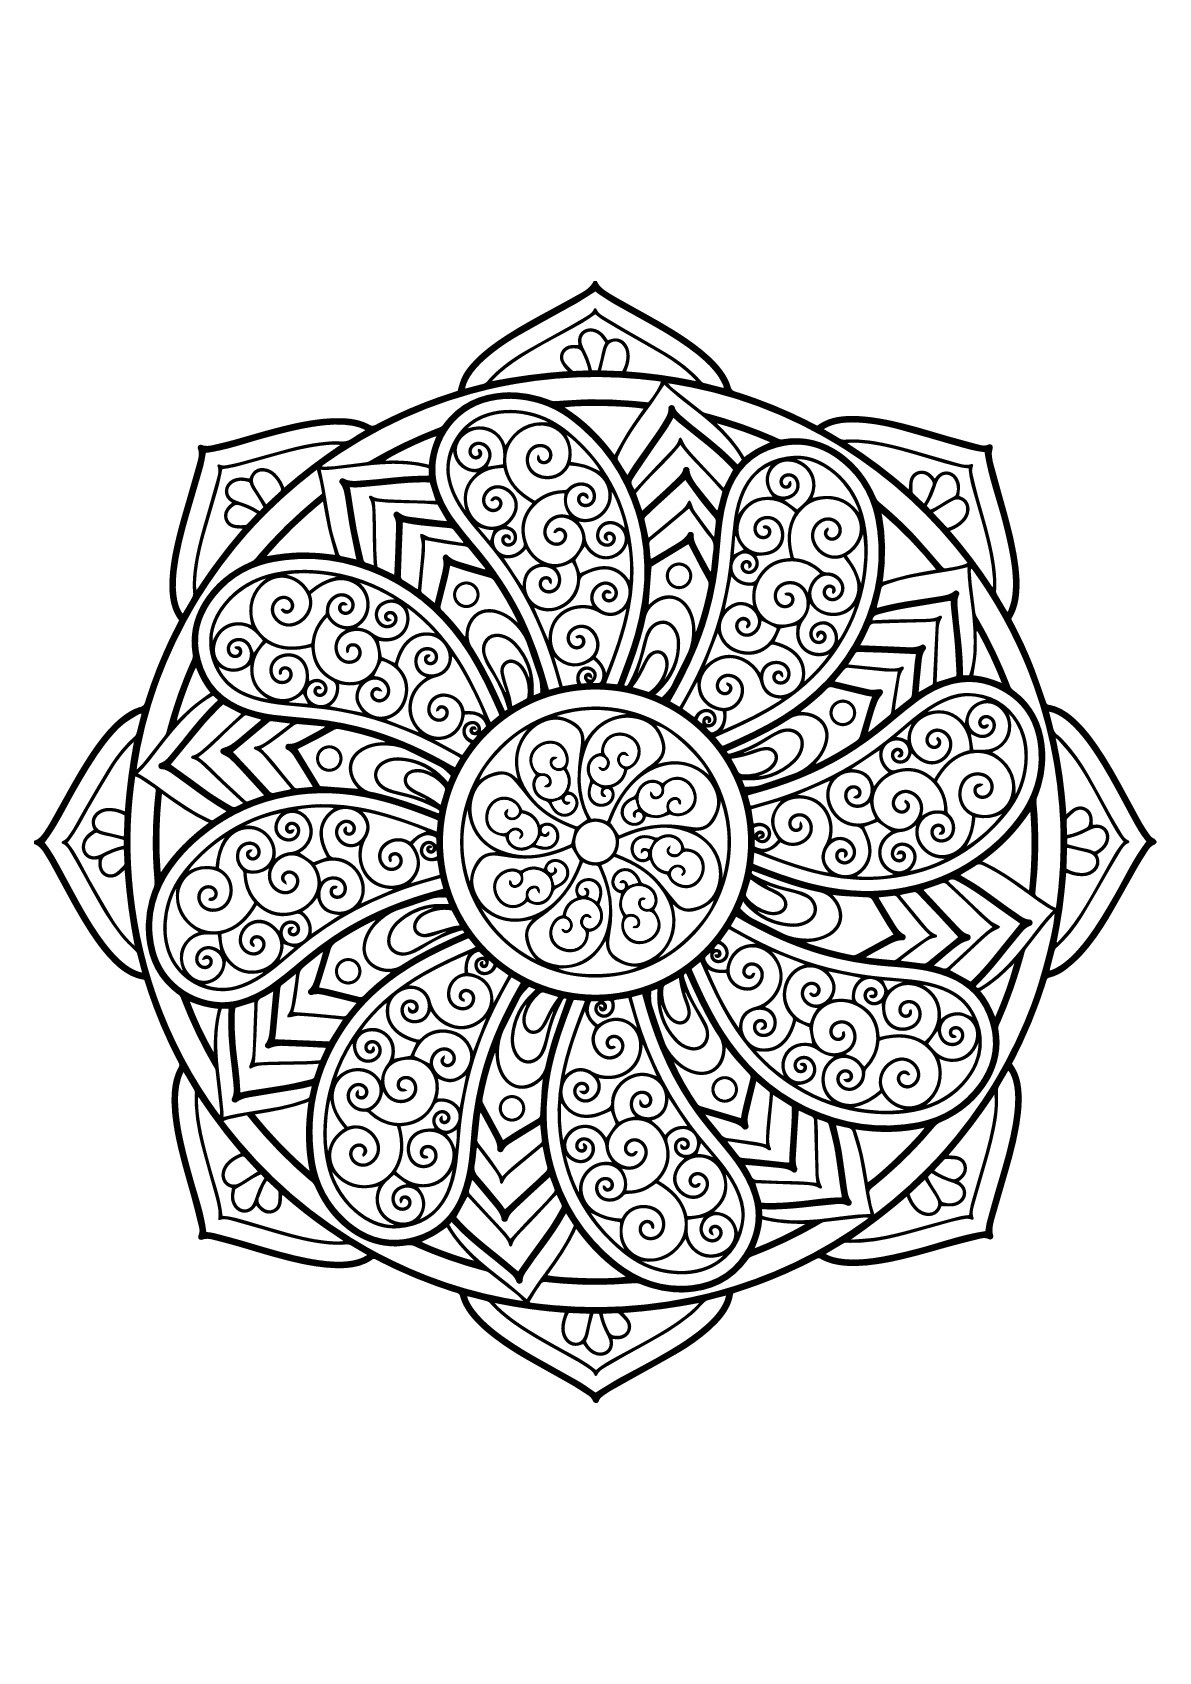 Mandala from free coloring books for adults 27 - M&alas ...   coloring books for adults mandala